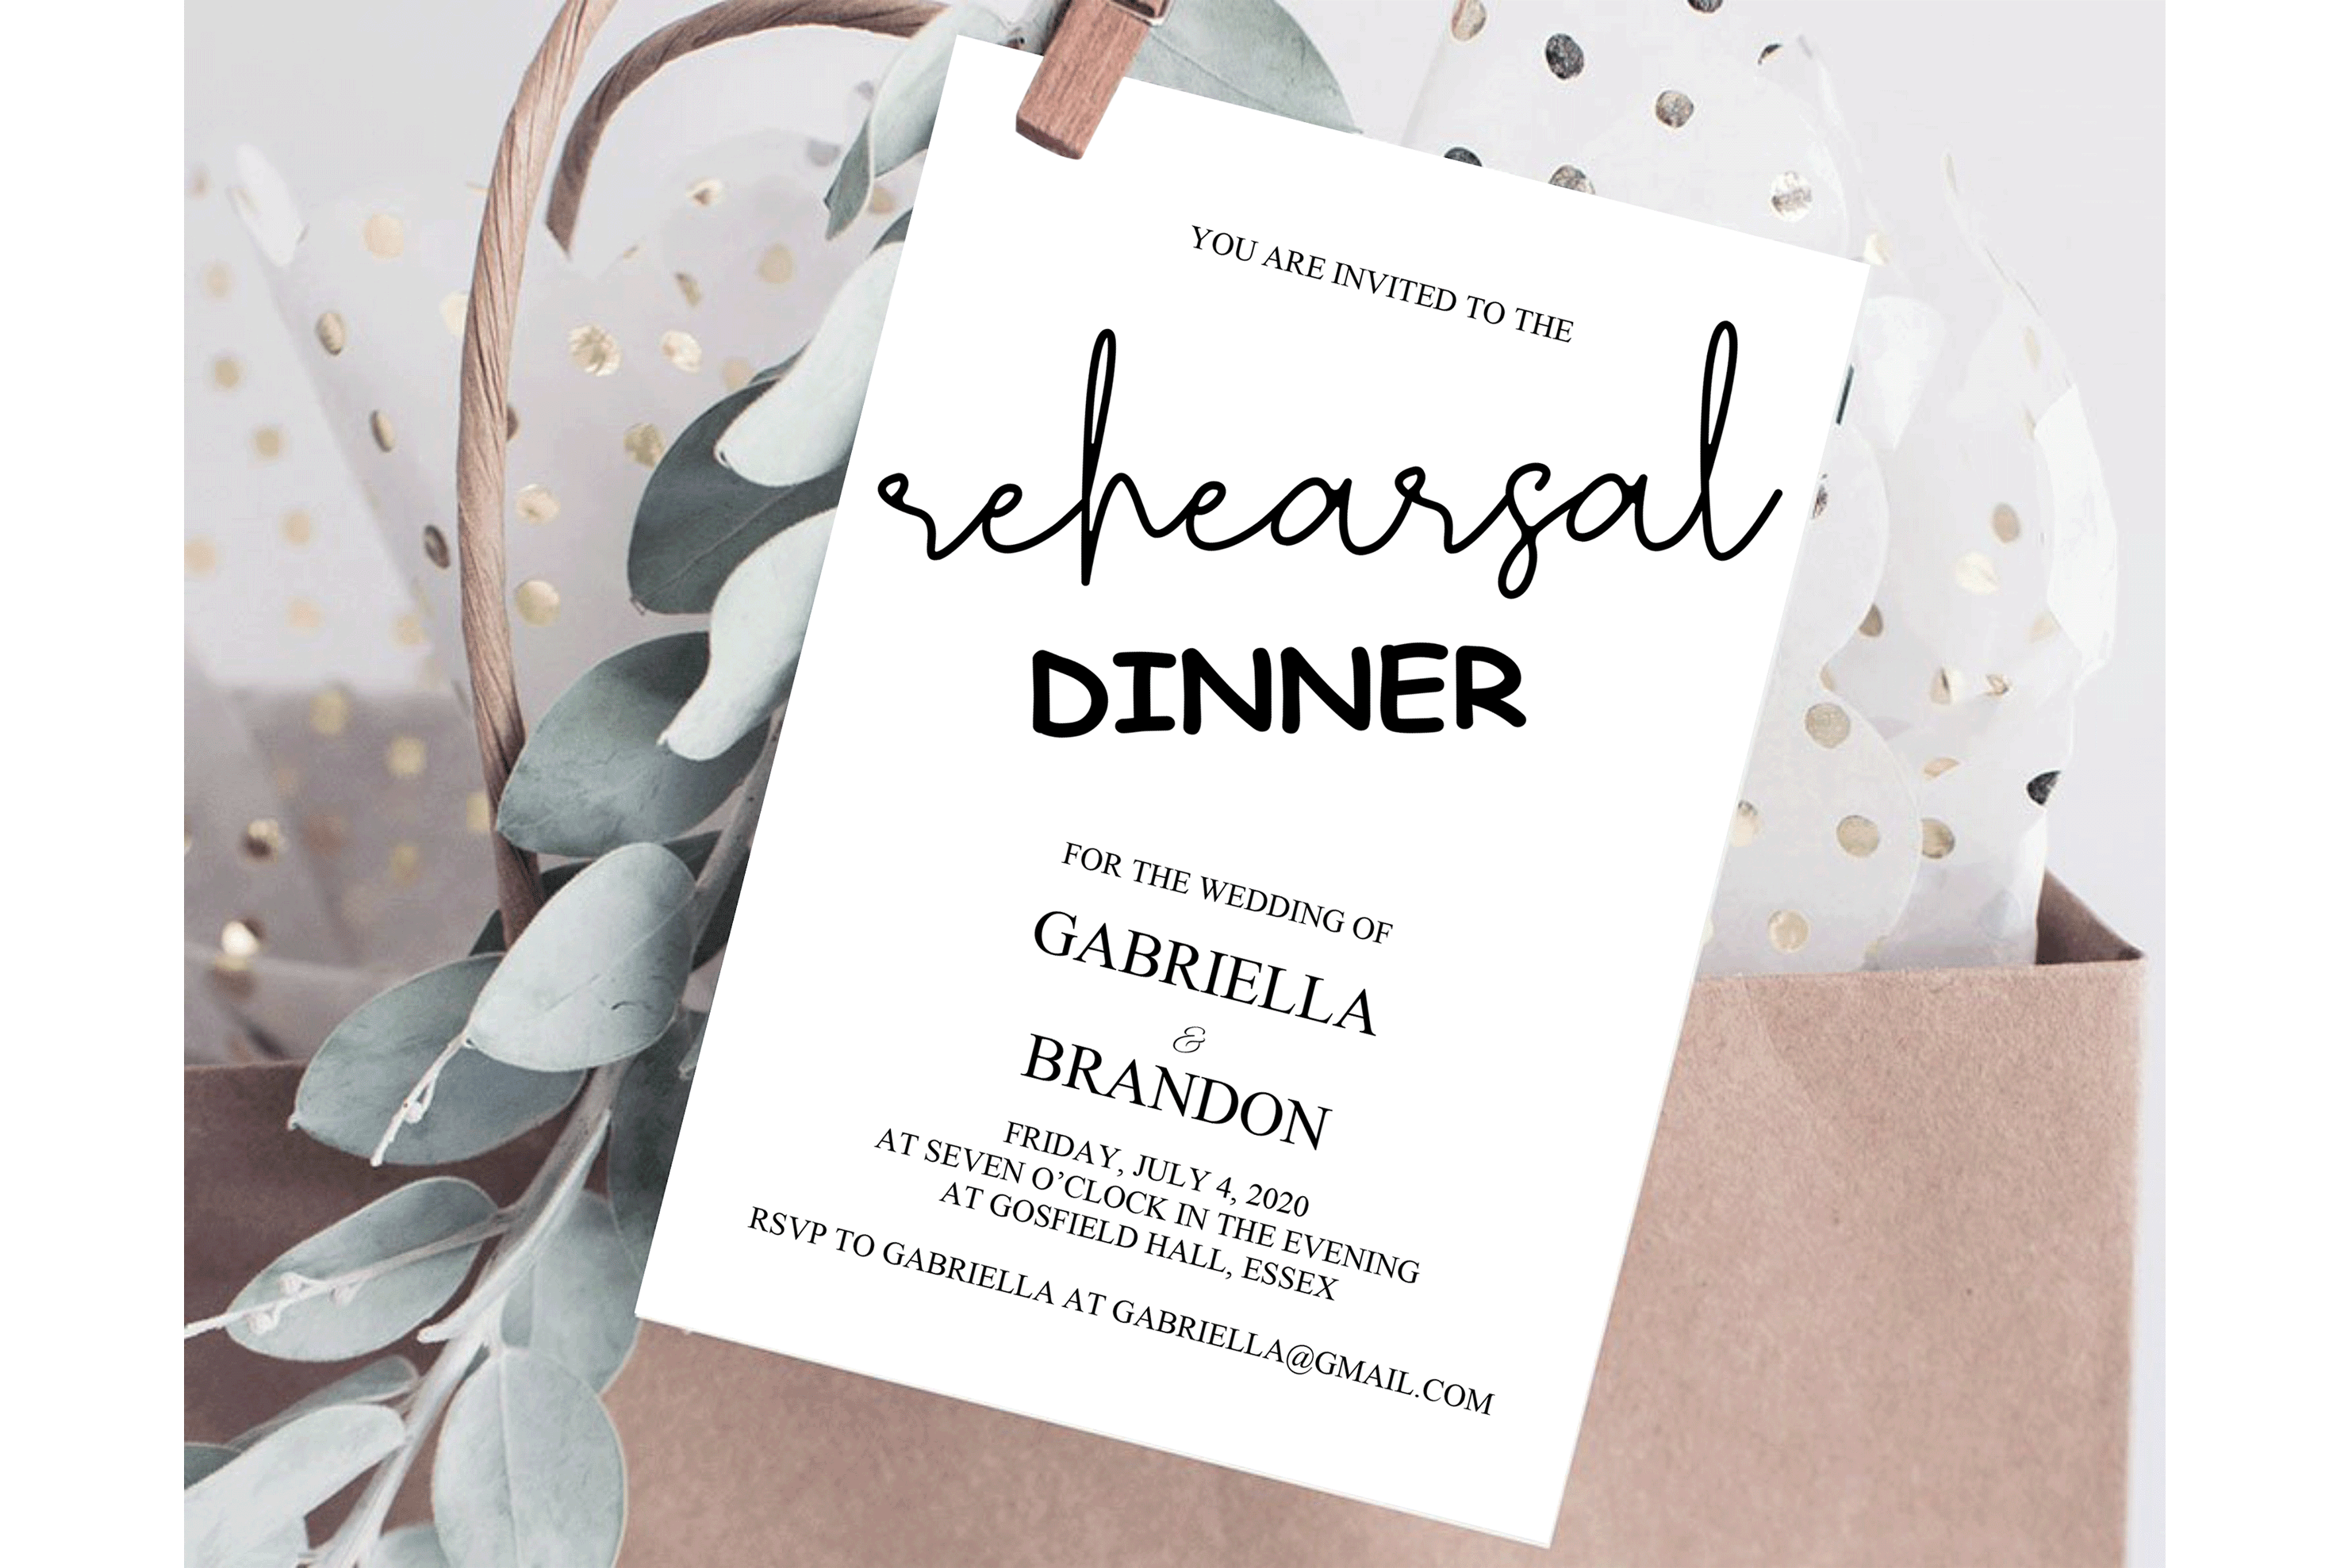 Rustic Rehearsal Dinner Invitation, Invitation Template example image 1